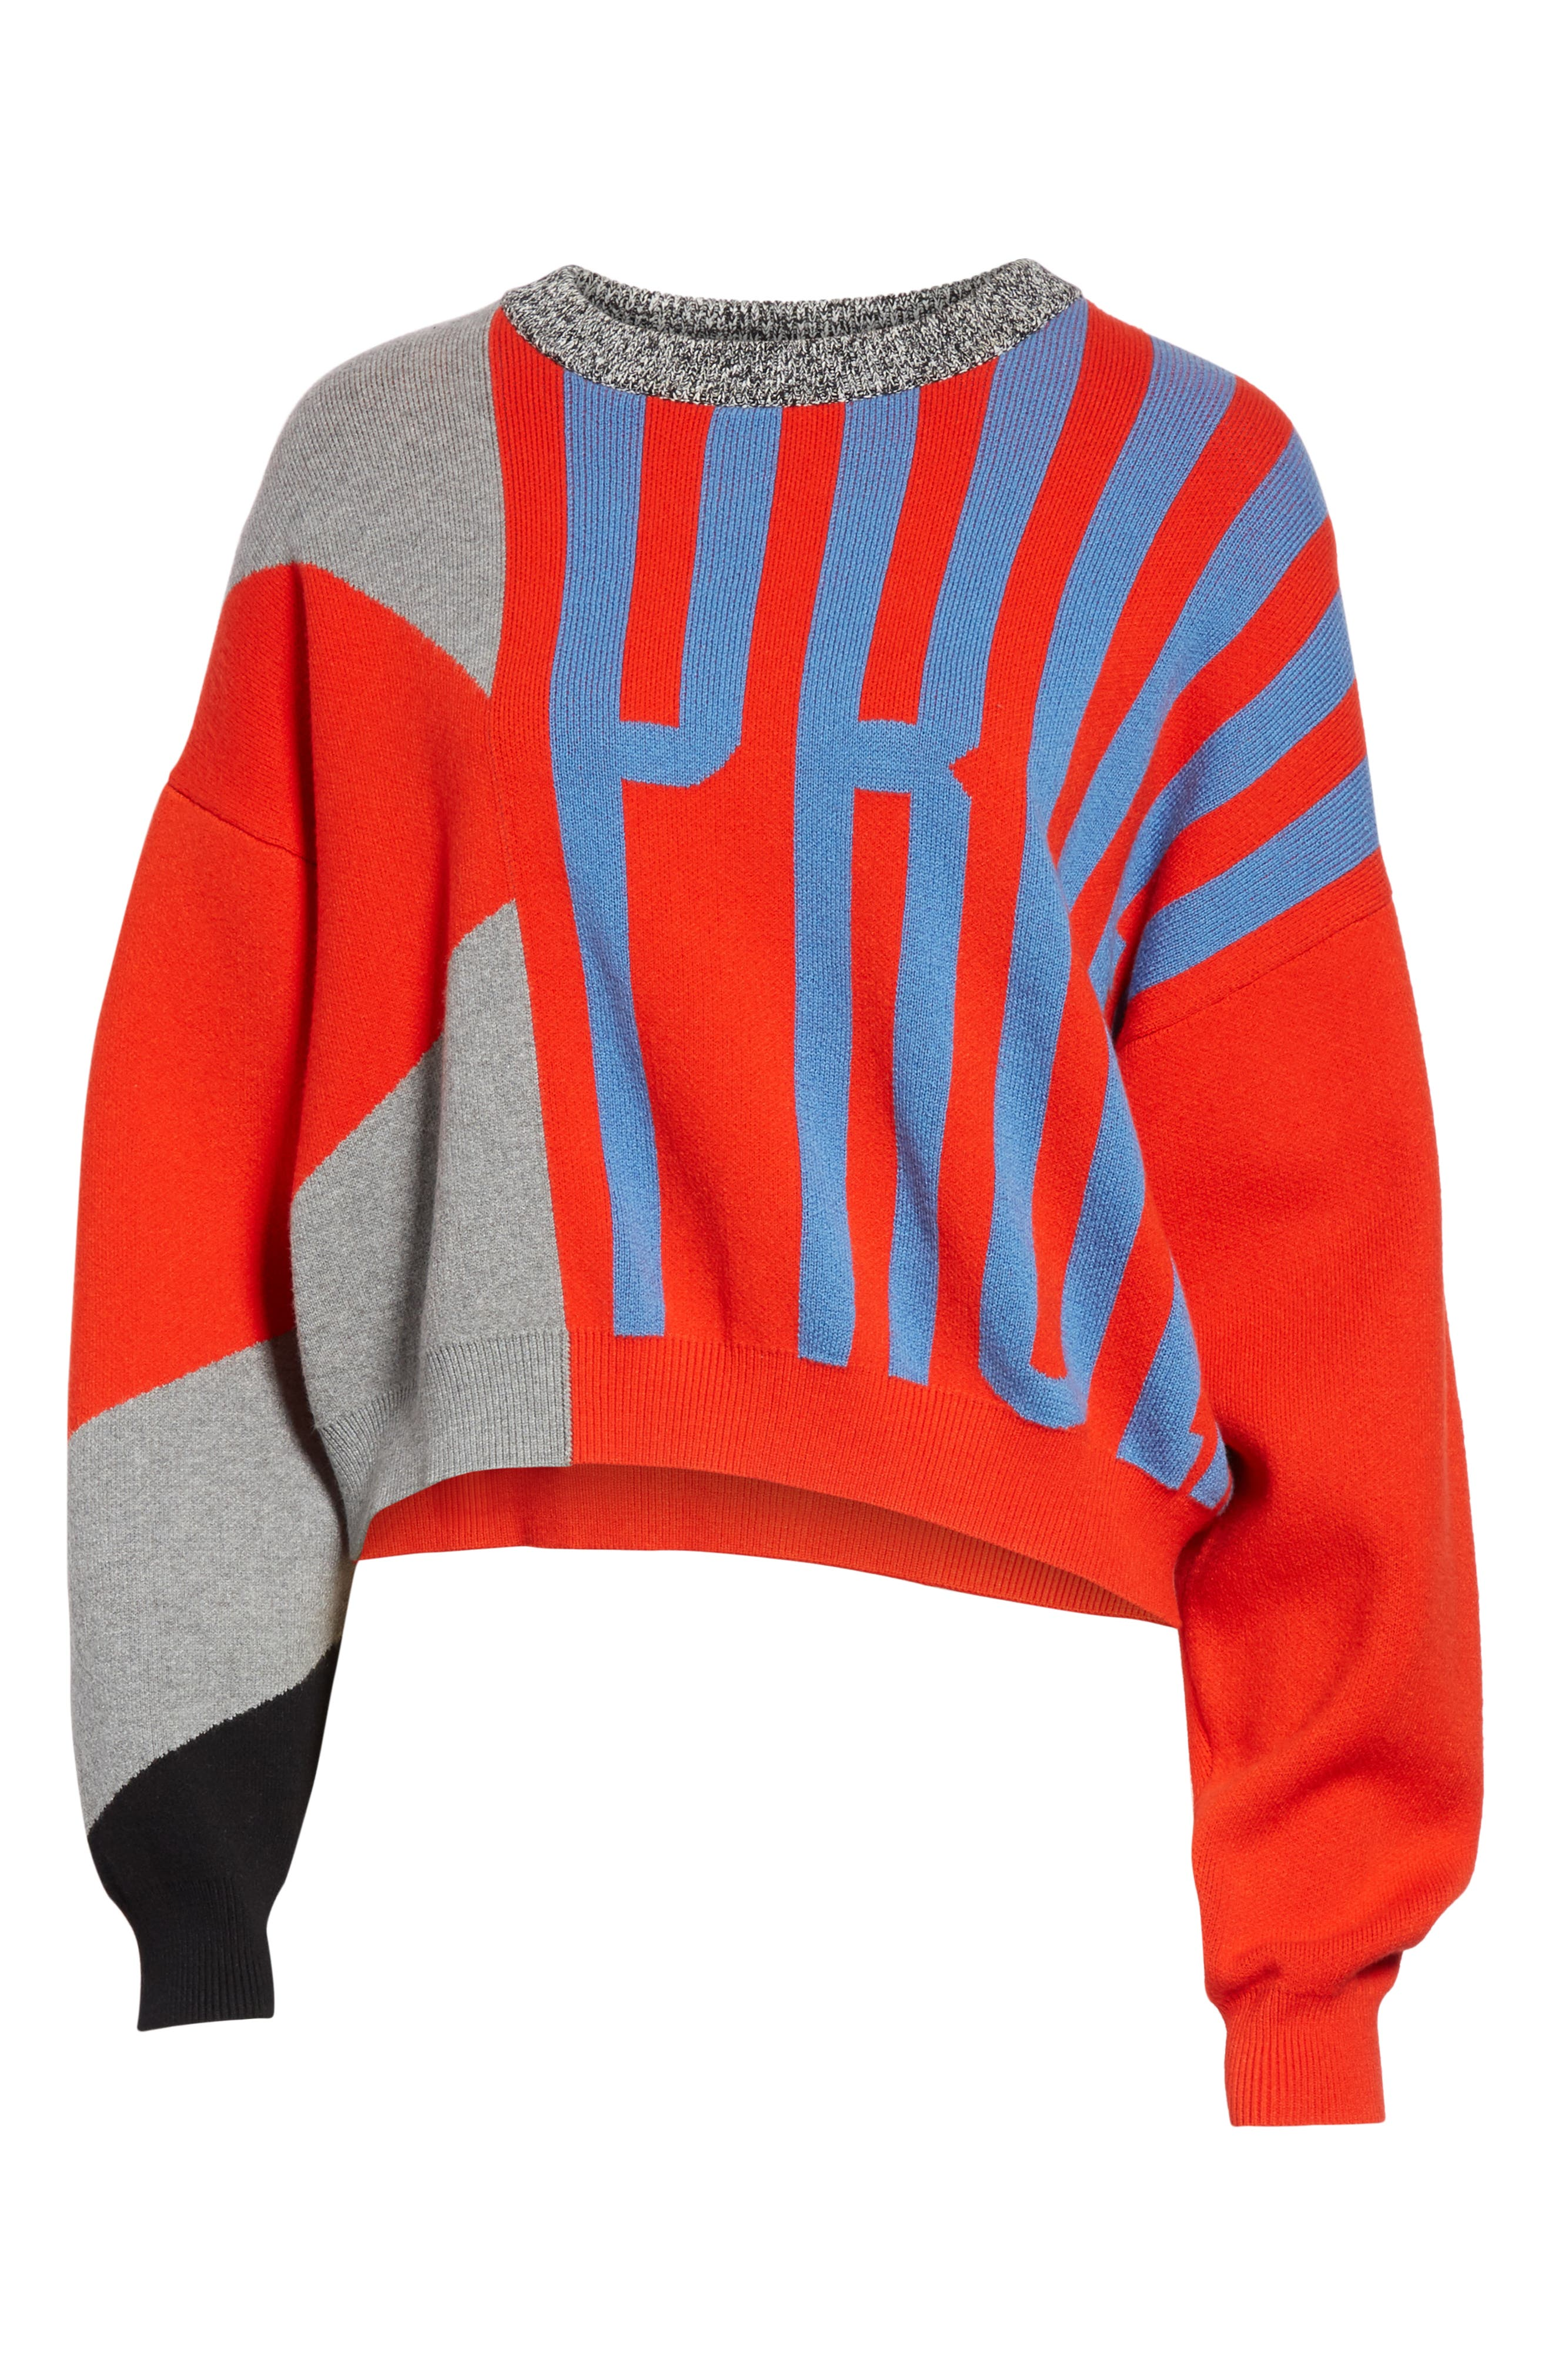 PSWL Graphic Logo Sweater,                             Alternate thumbnail 6, color,                             BRIGHT RED COMBO